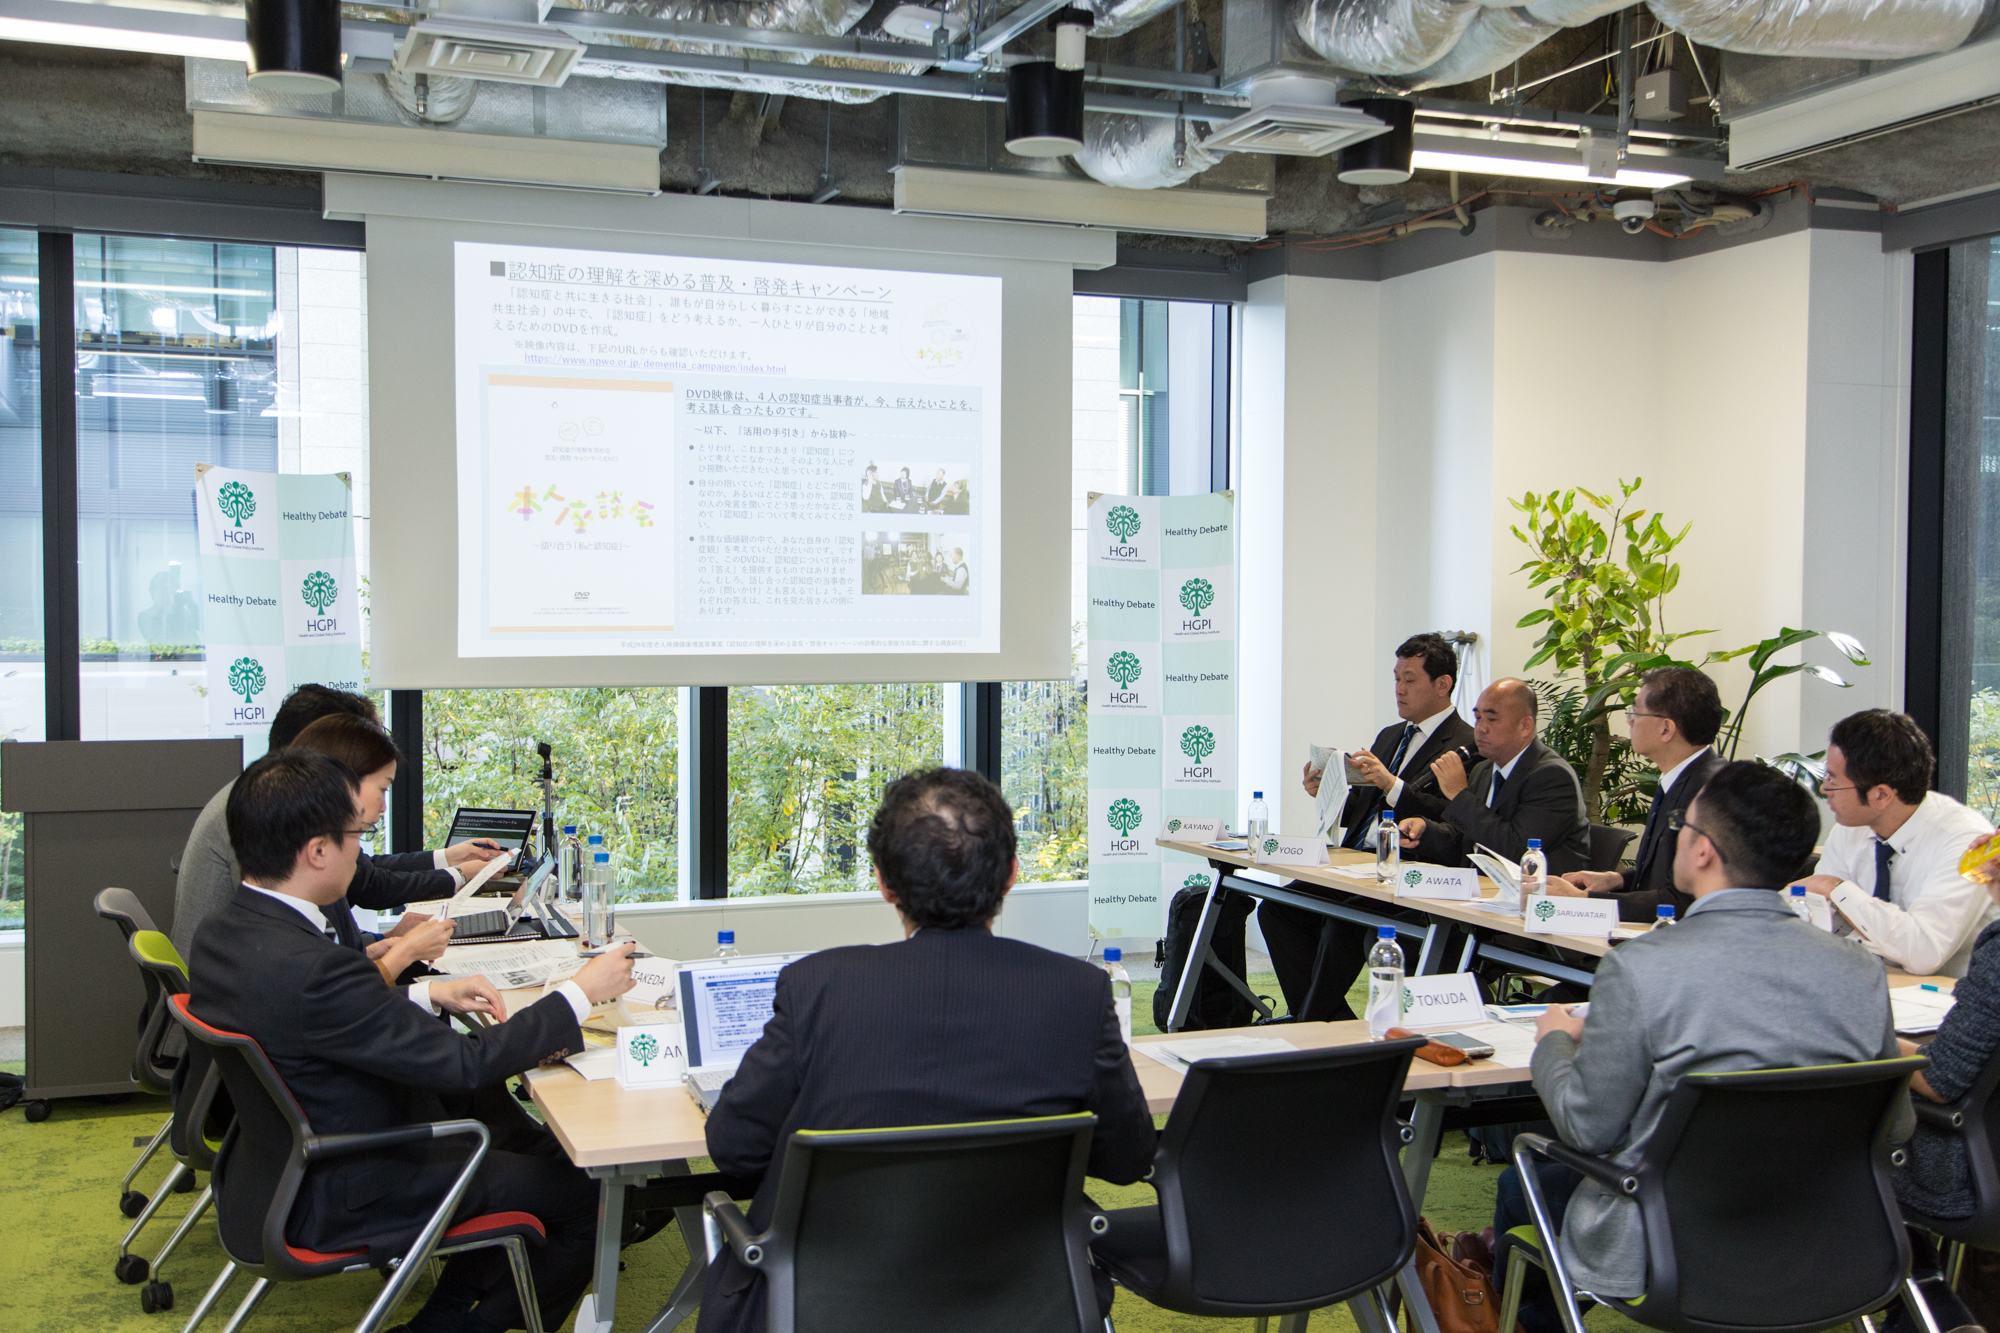 [Event Report] NCD Global Forum for Civil Society, Dementia Session (November 20, 2018)